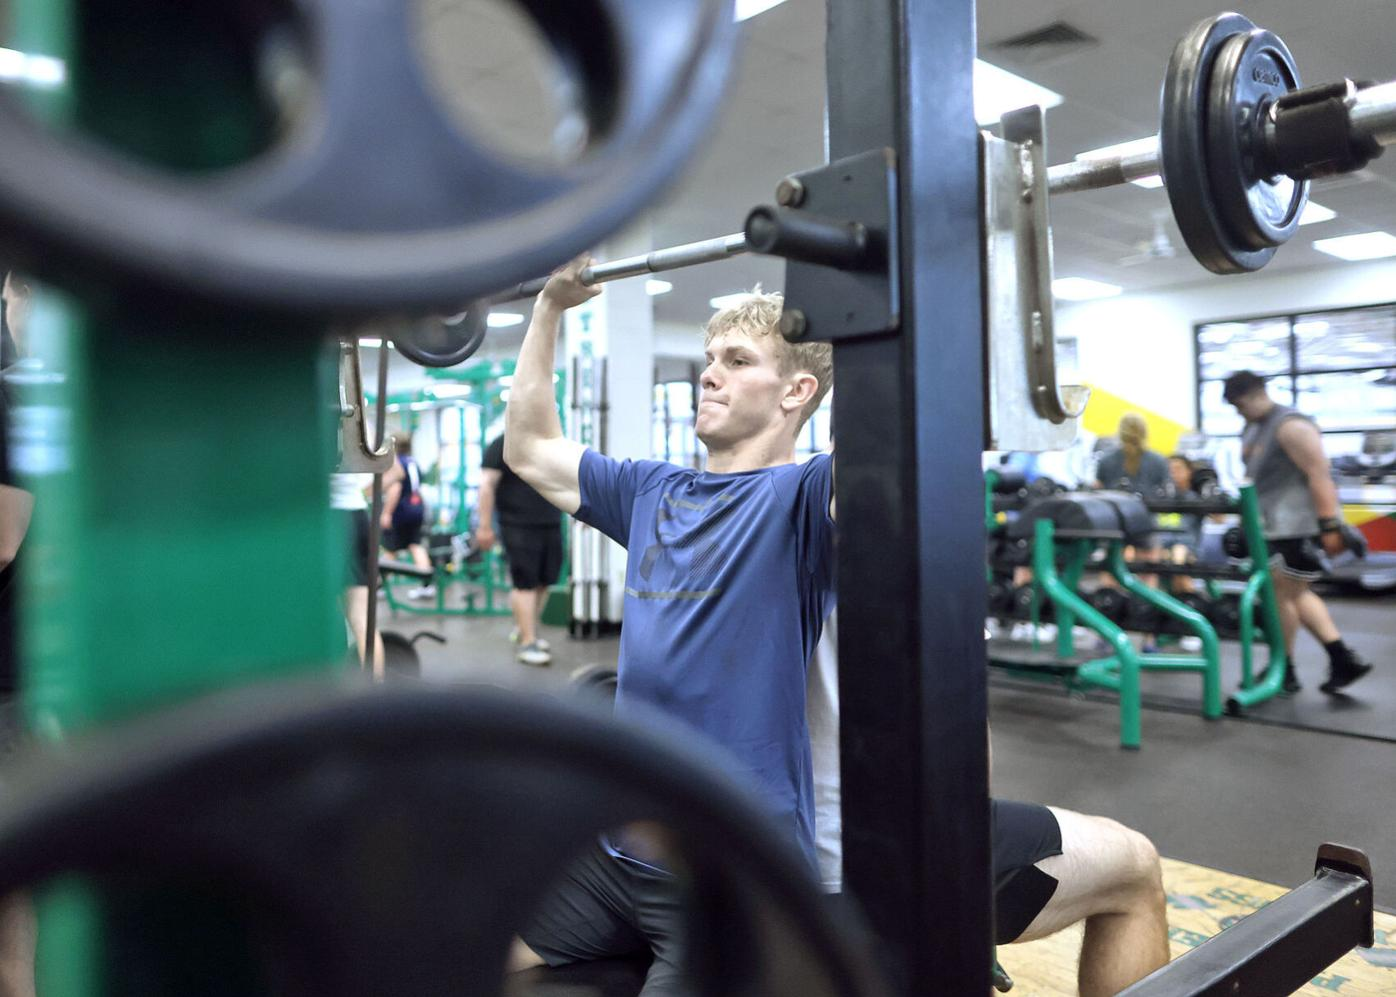 JVG_210702_WEIGHTS01